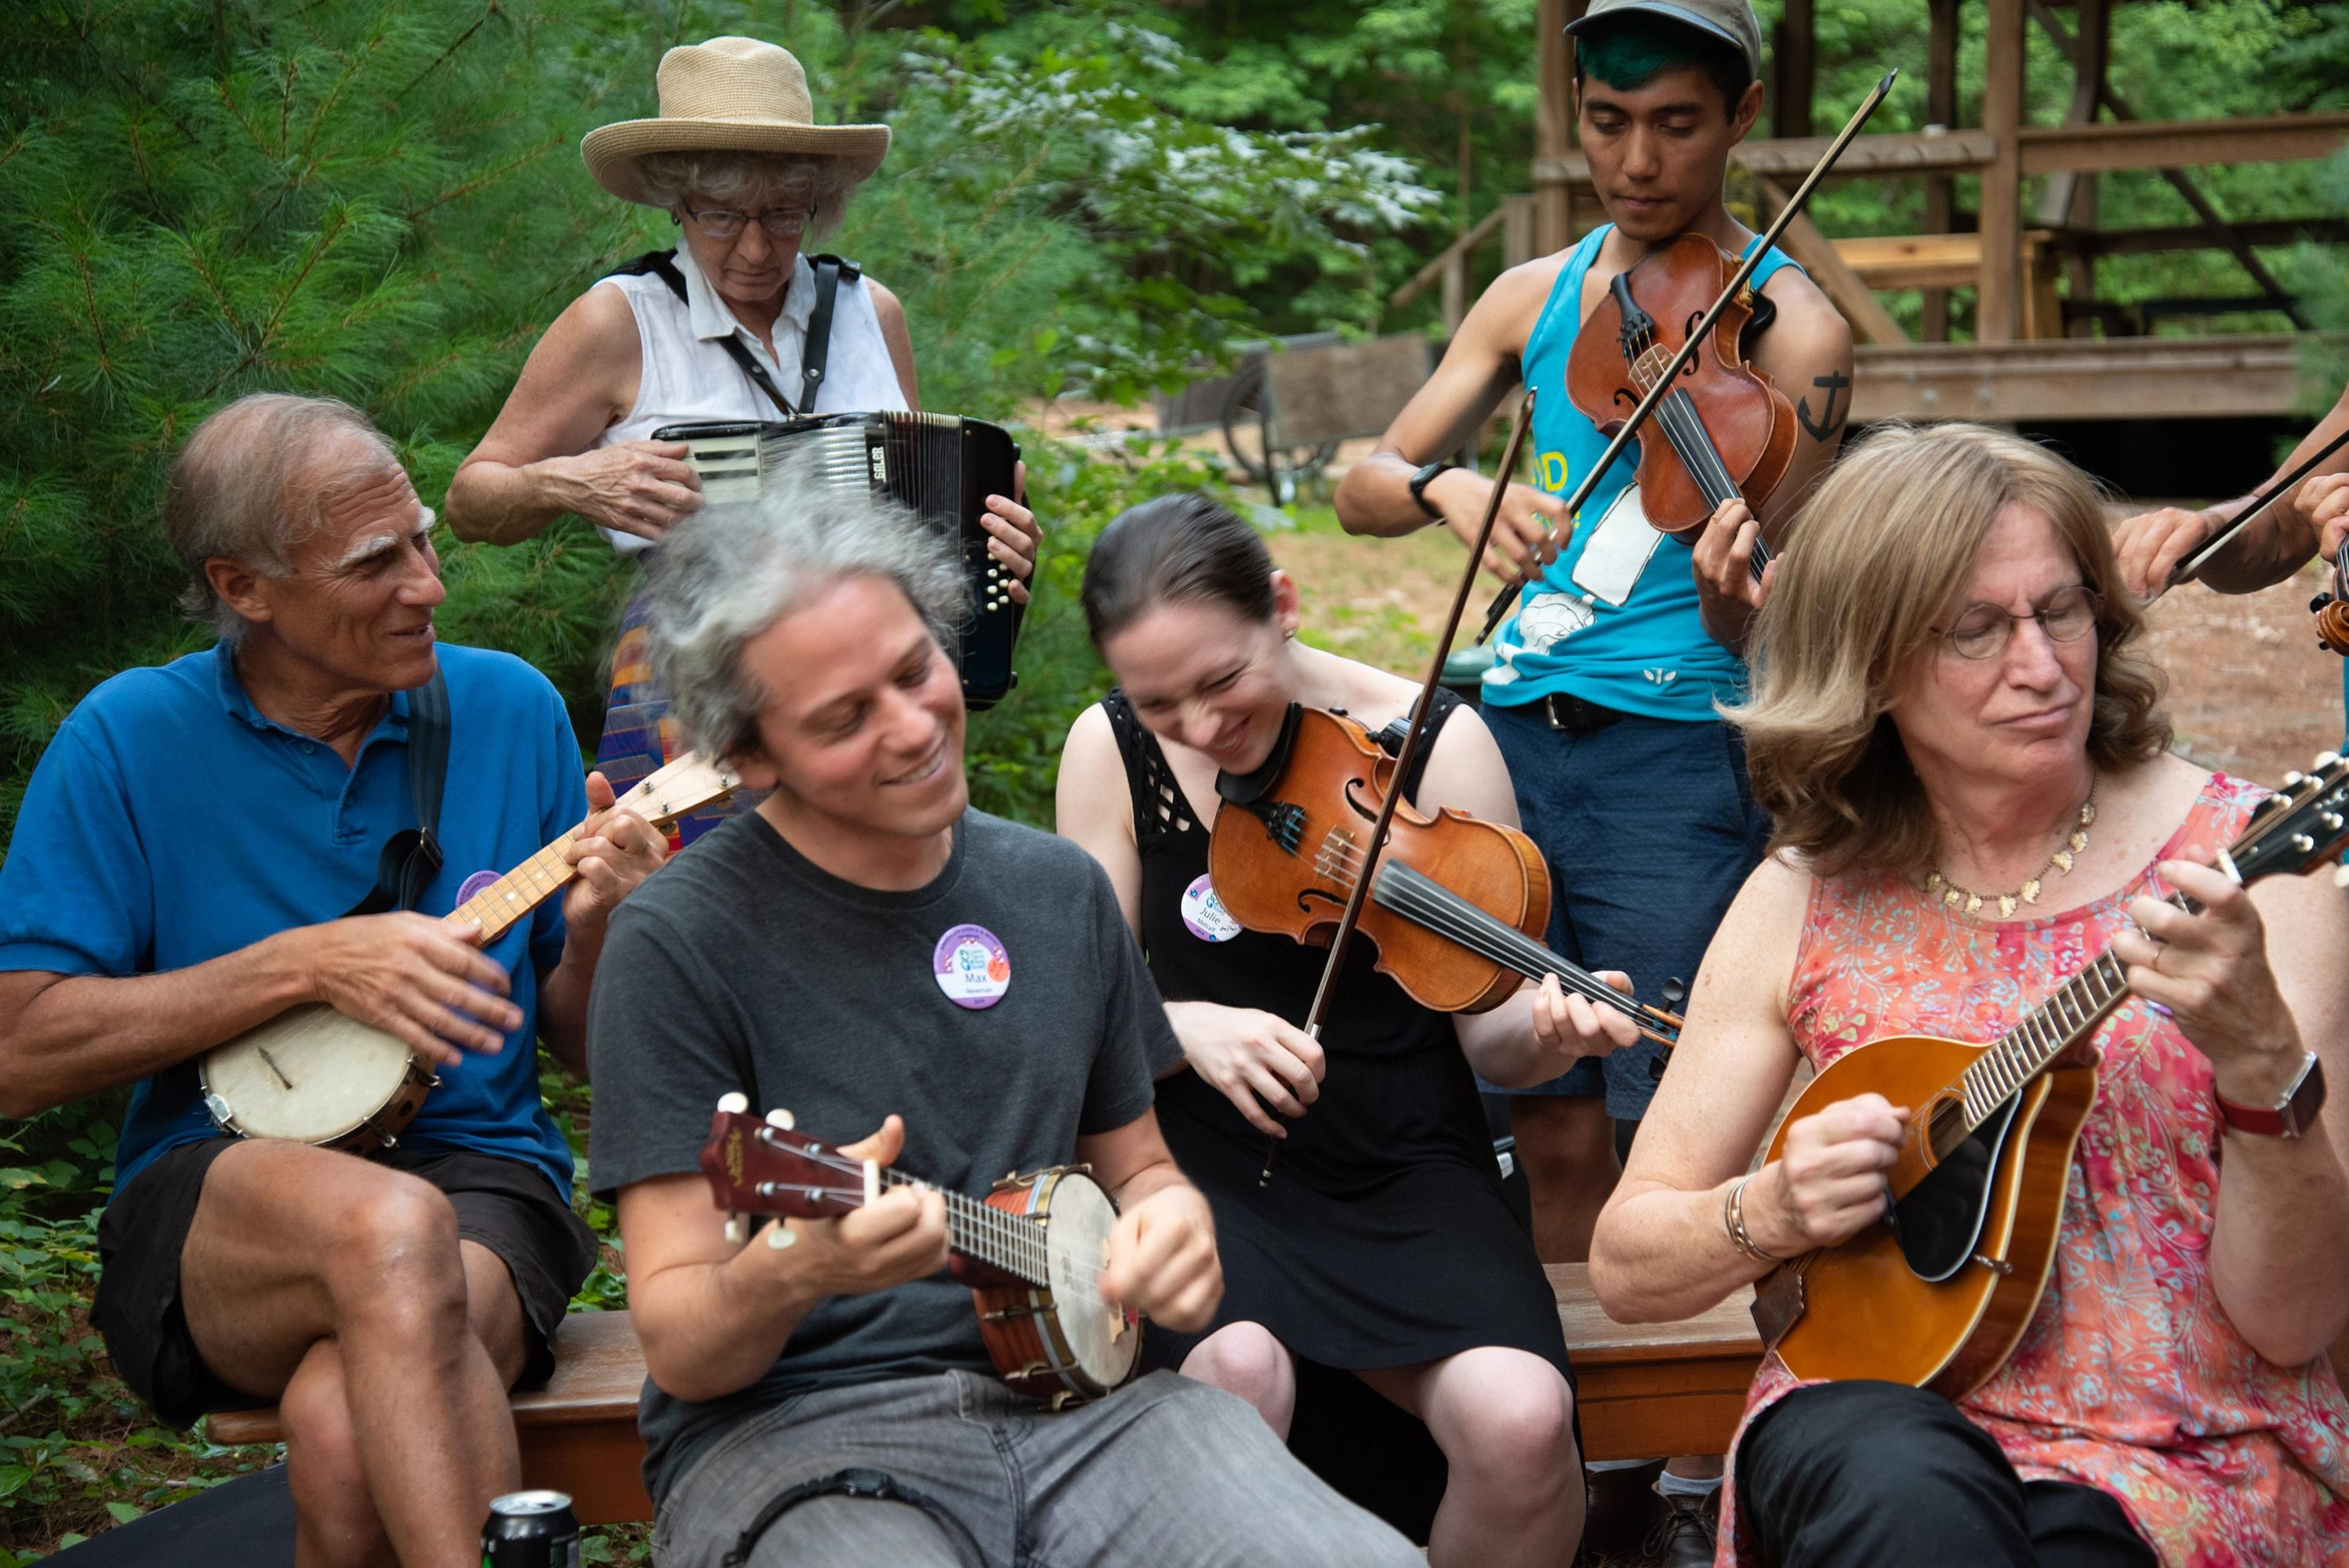 Staff and campers jamming together